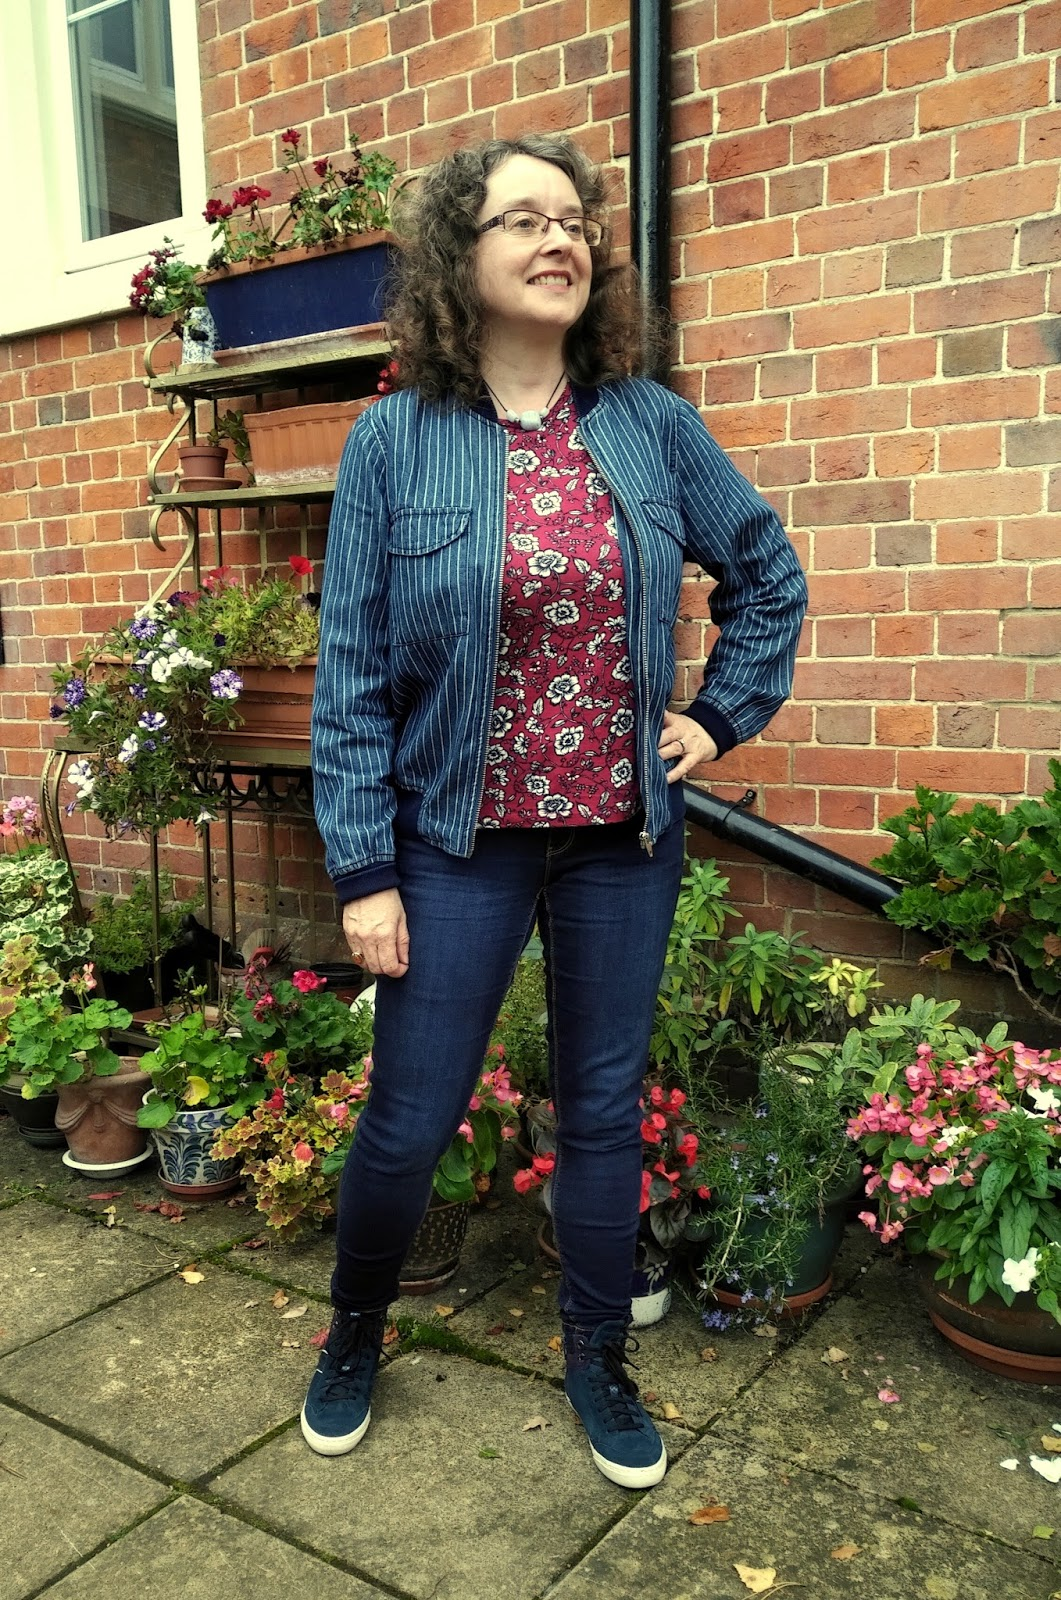 Peacocks Floral Statement Sleeve Top | Asos Petite Striped Bomber Jacket | Geox High Tops |Petite Silver Vixen